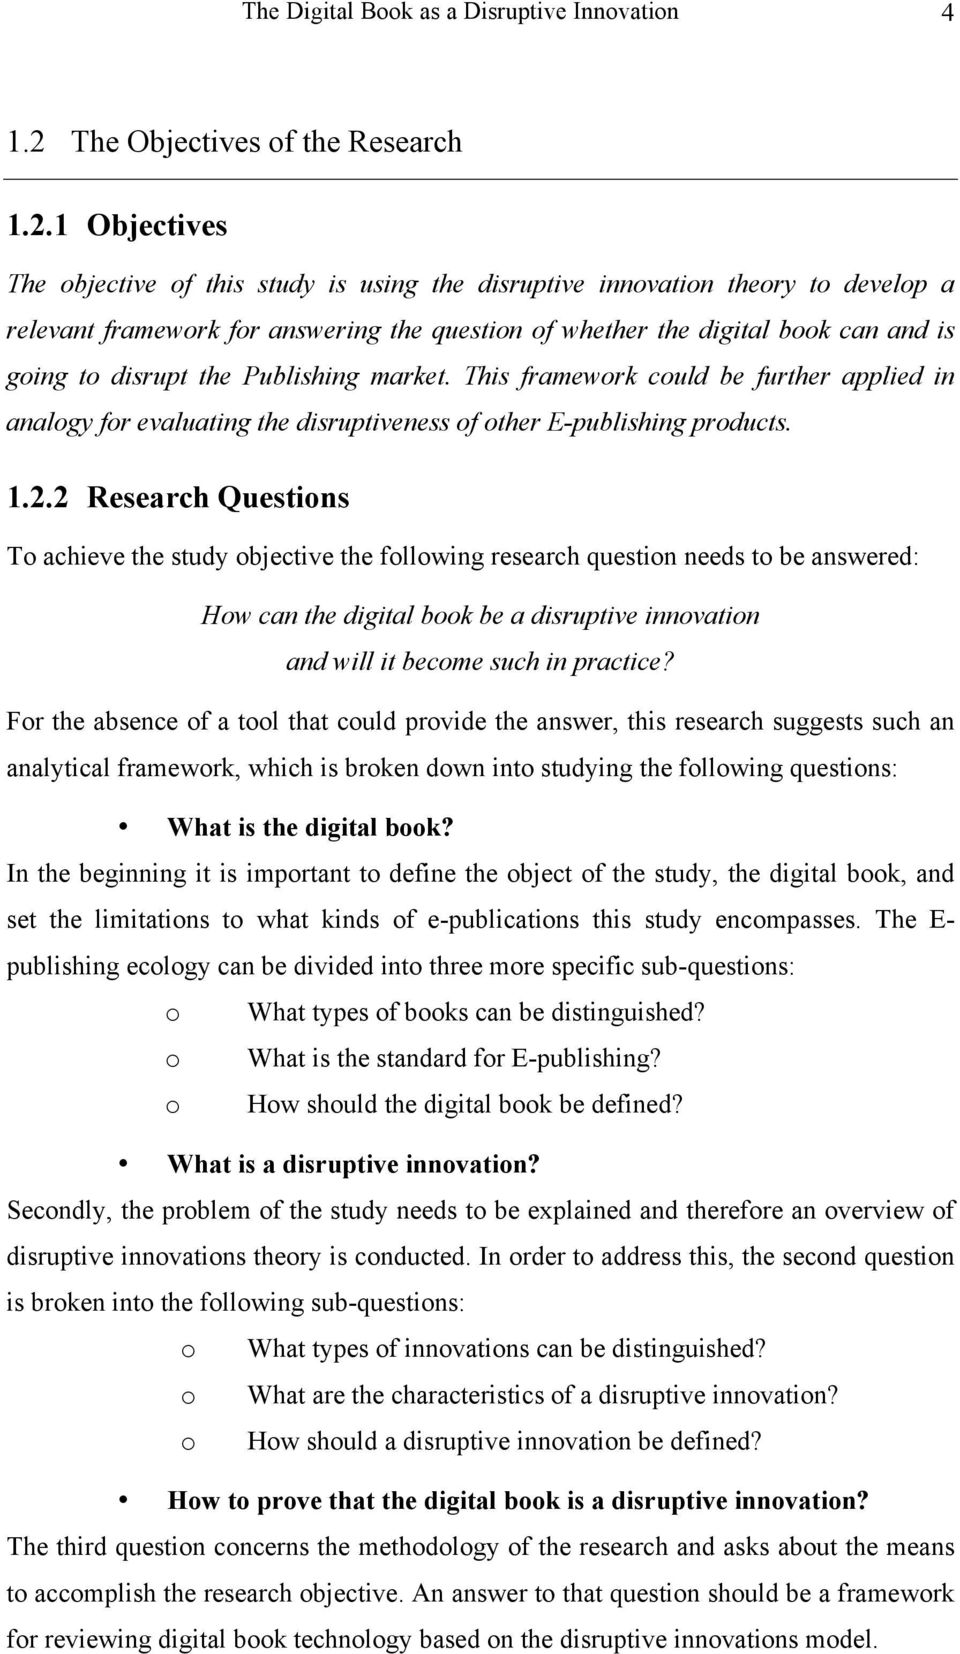 1 Objectives The objective of this study is using the disruptive innovation theory to develop a relevant framework for answering the question of whether the digital book can and is going to disrupt